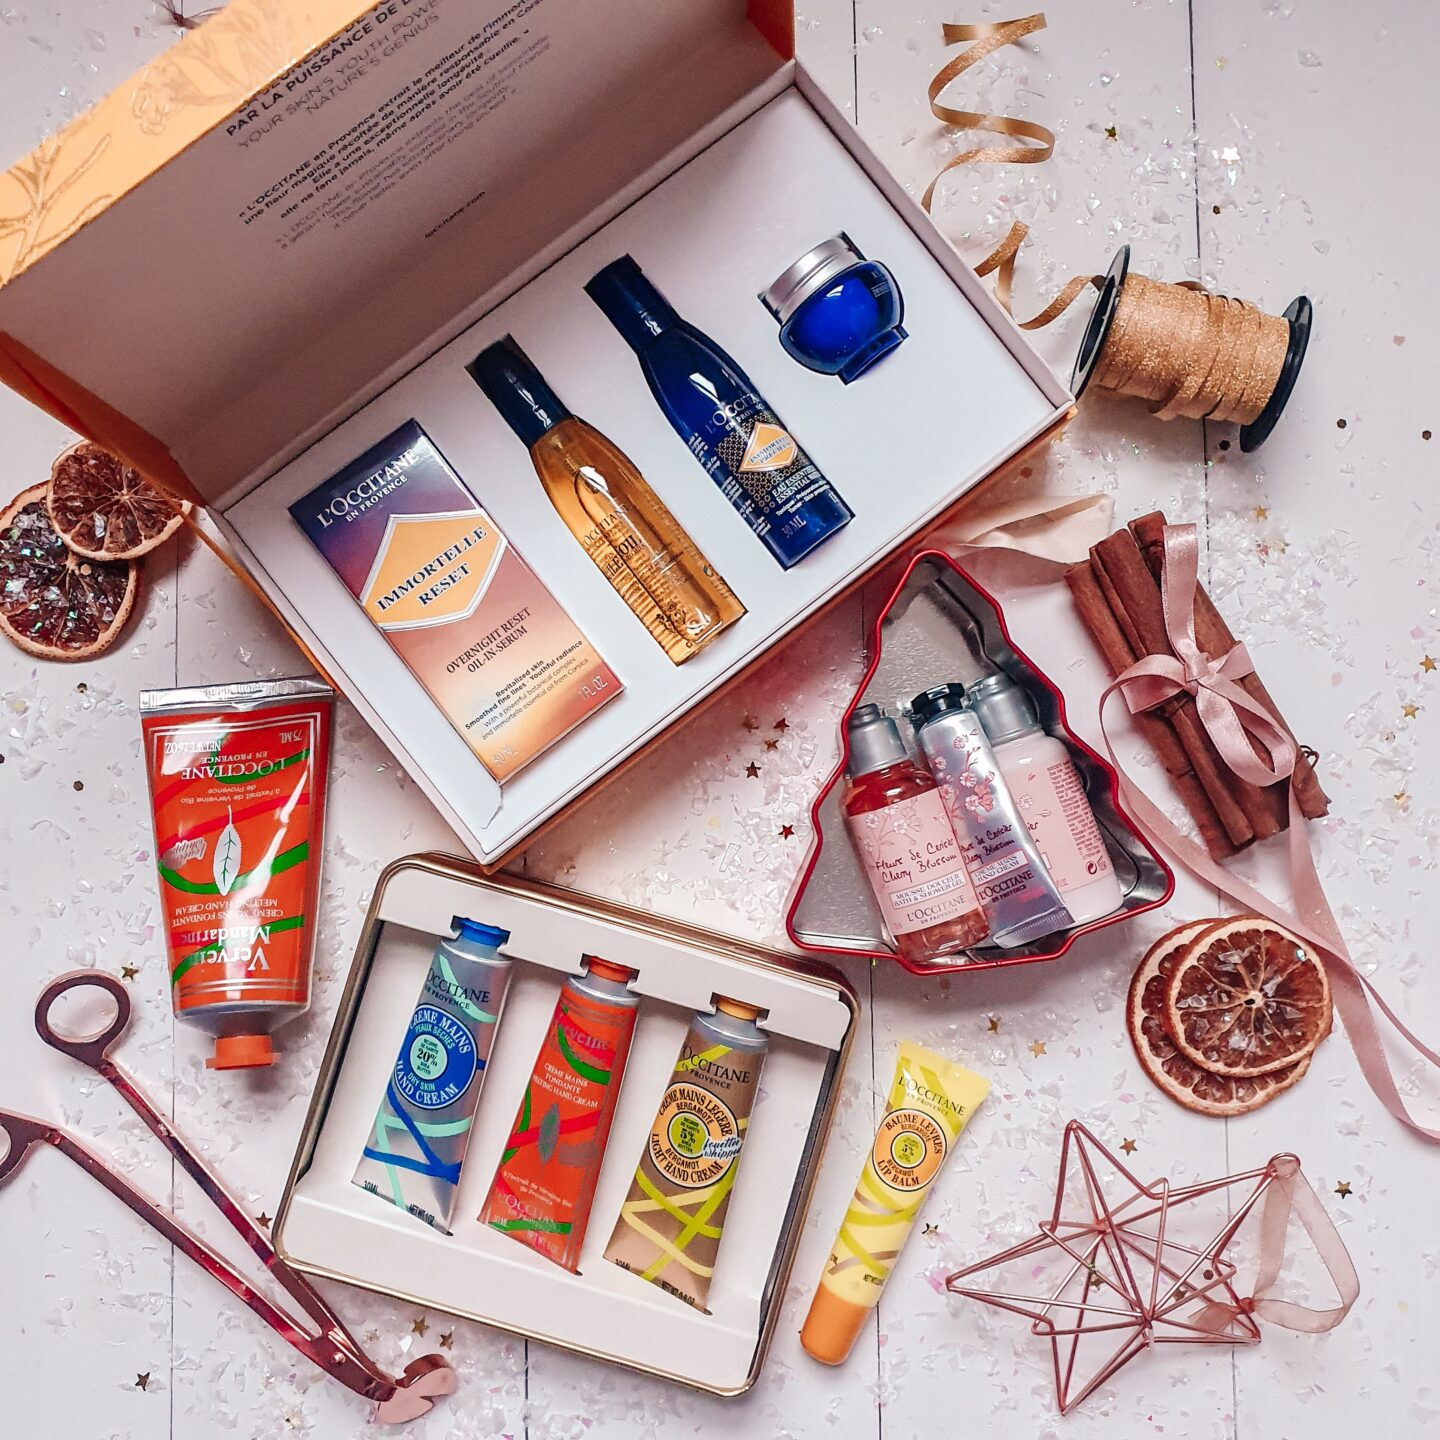 L'Occitane Christmas Gift Sets